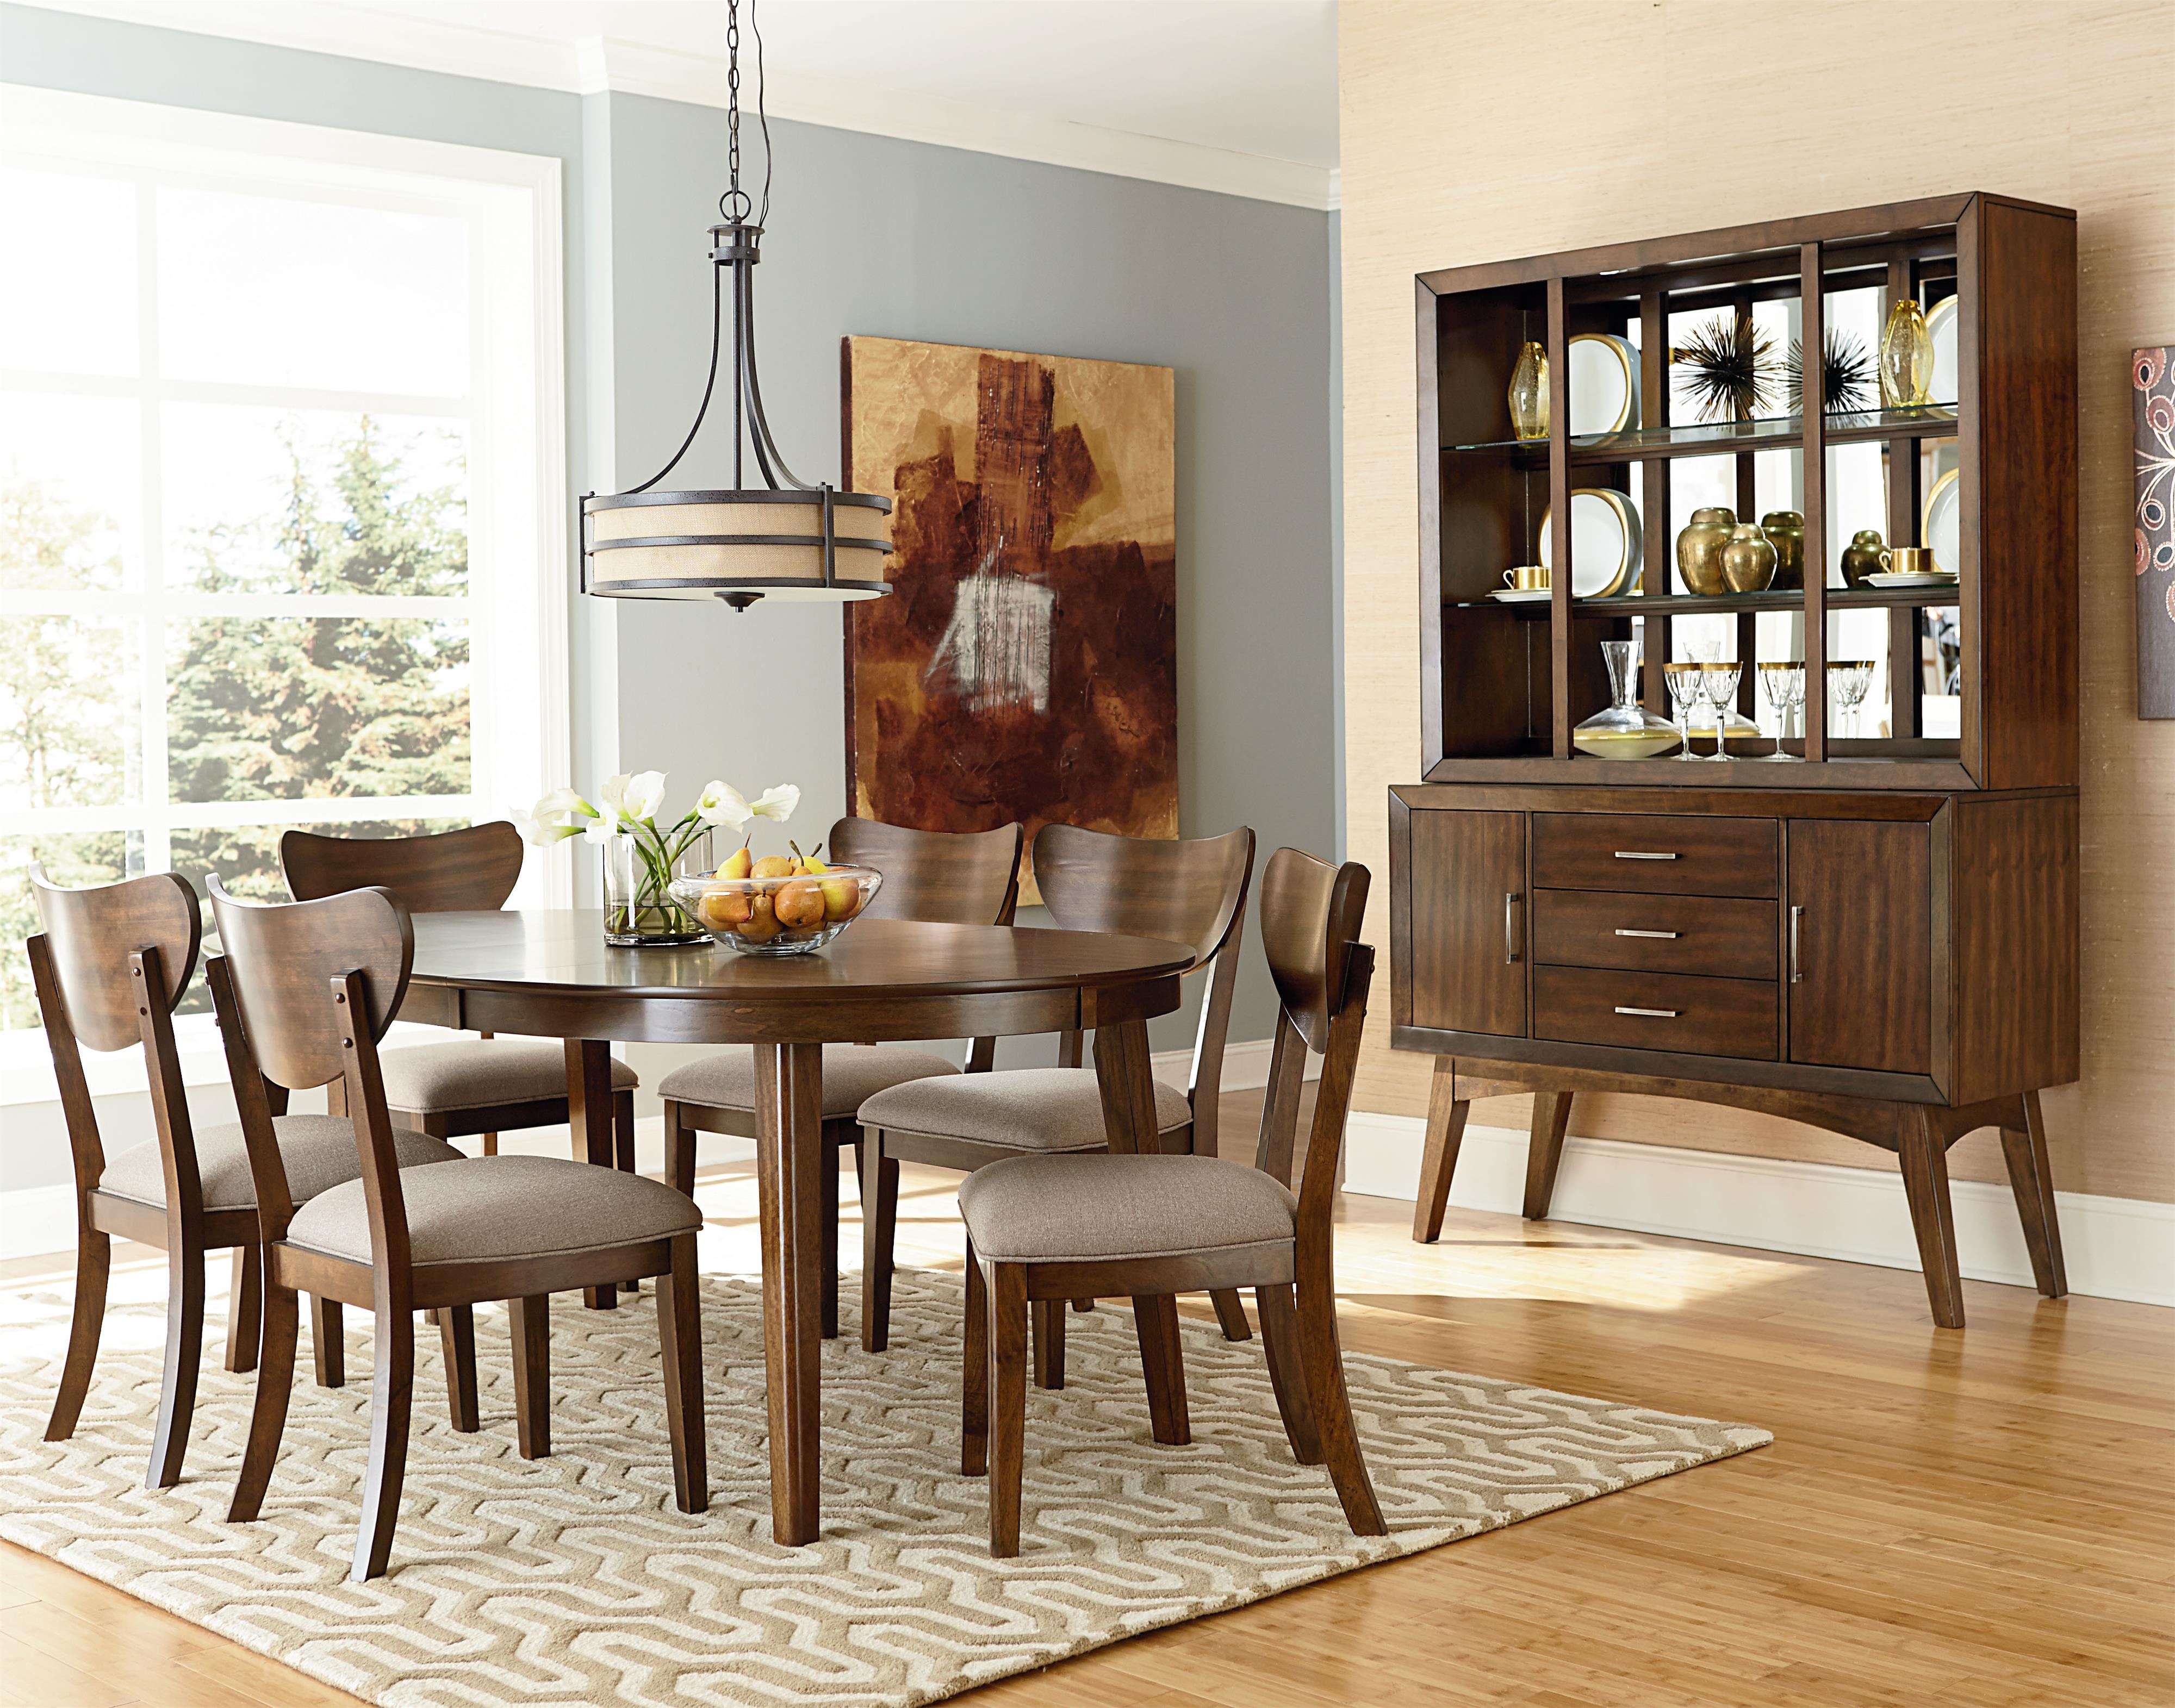 Standard Furniture Roxbury Casual Dining Room Group - Item Number: 16200 Dining Room Group 2